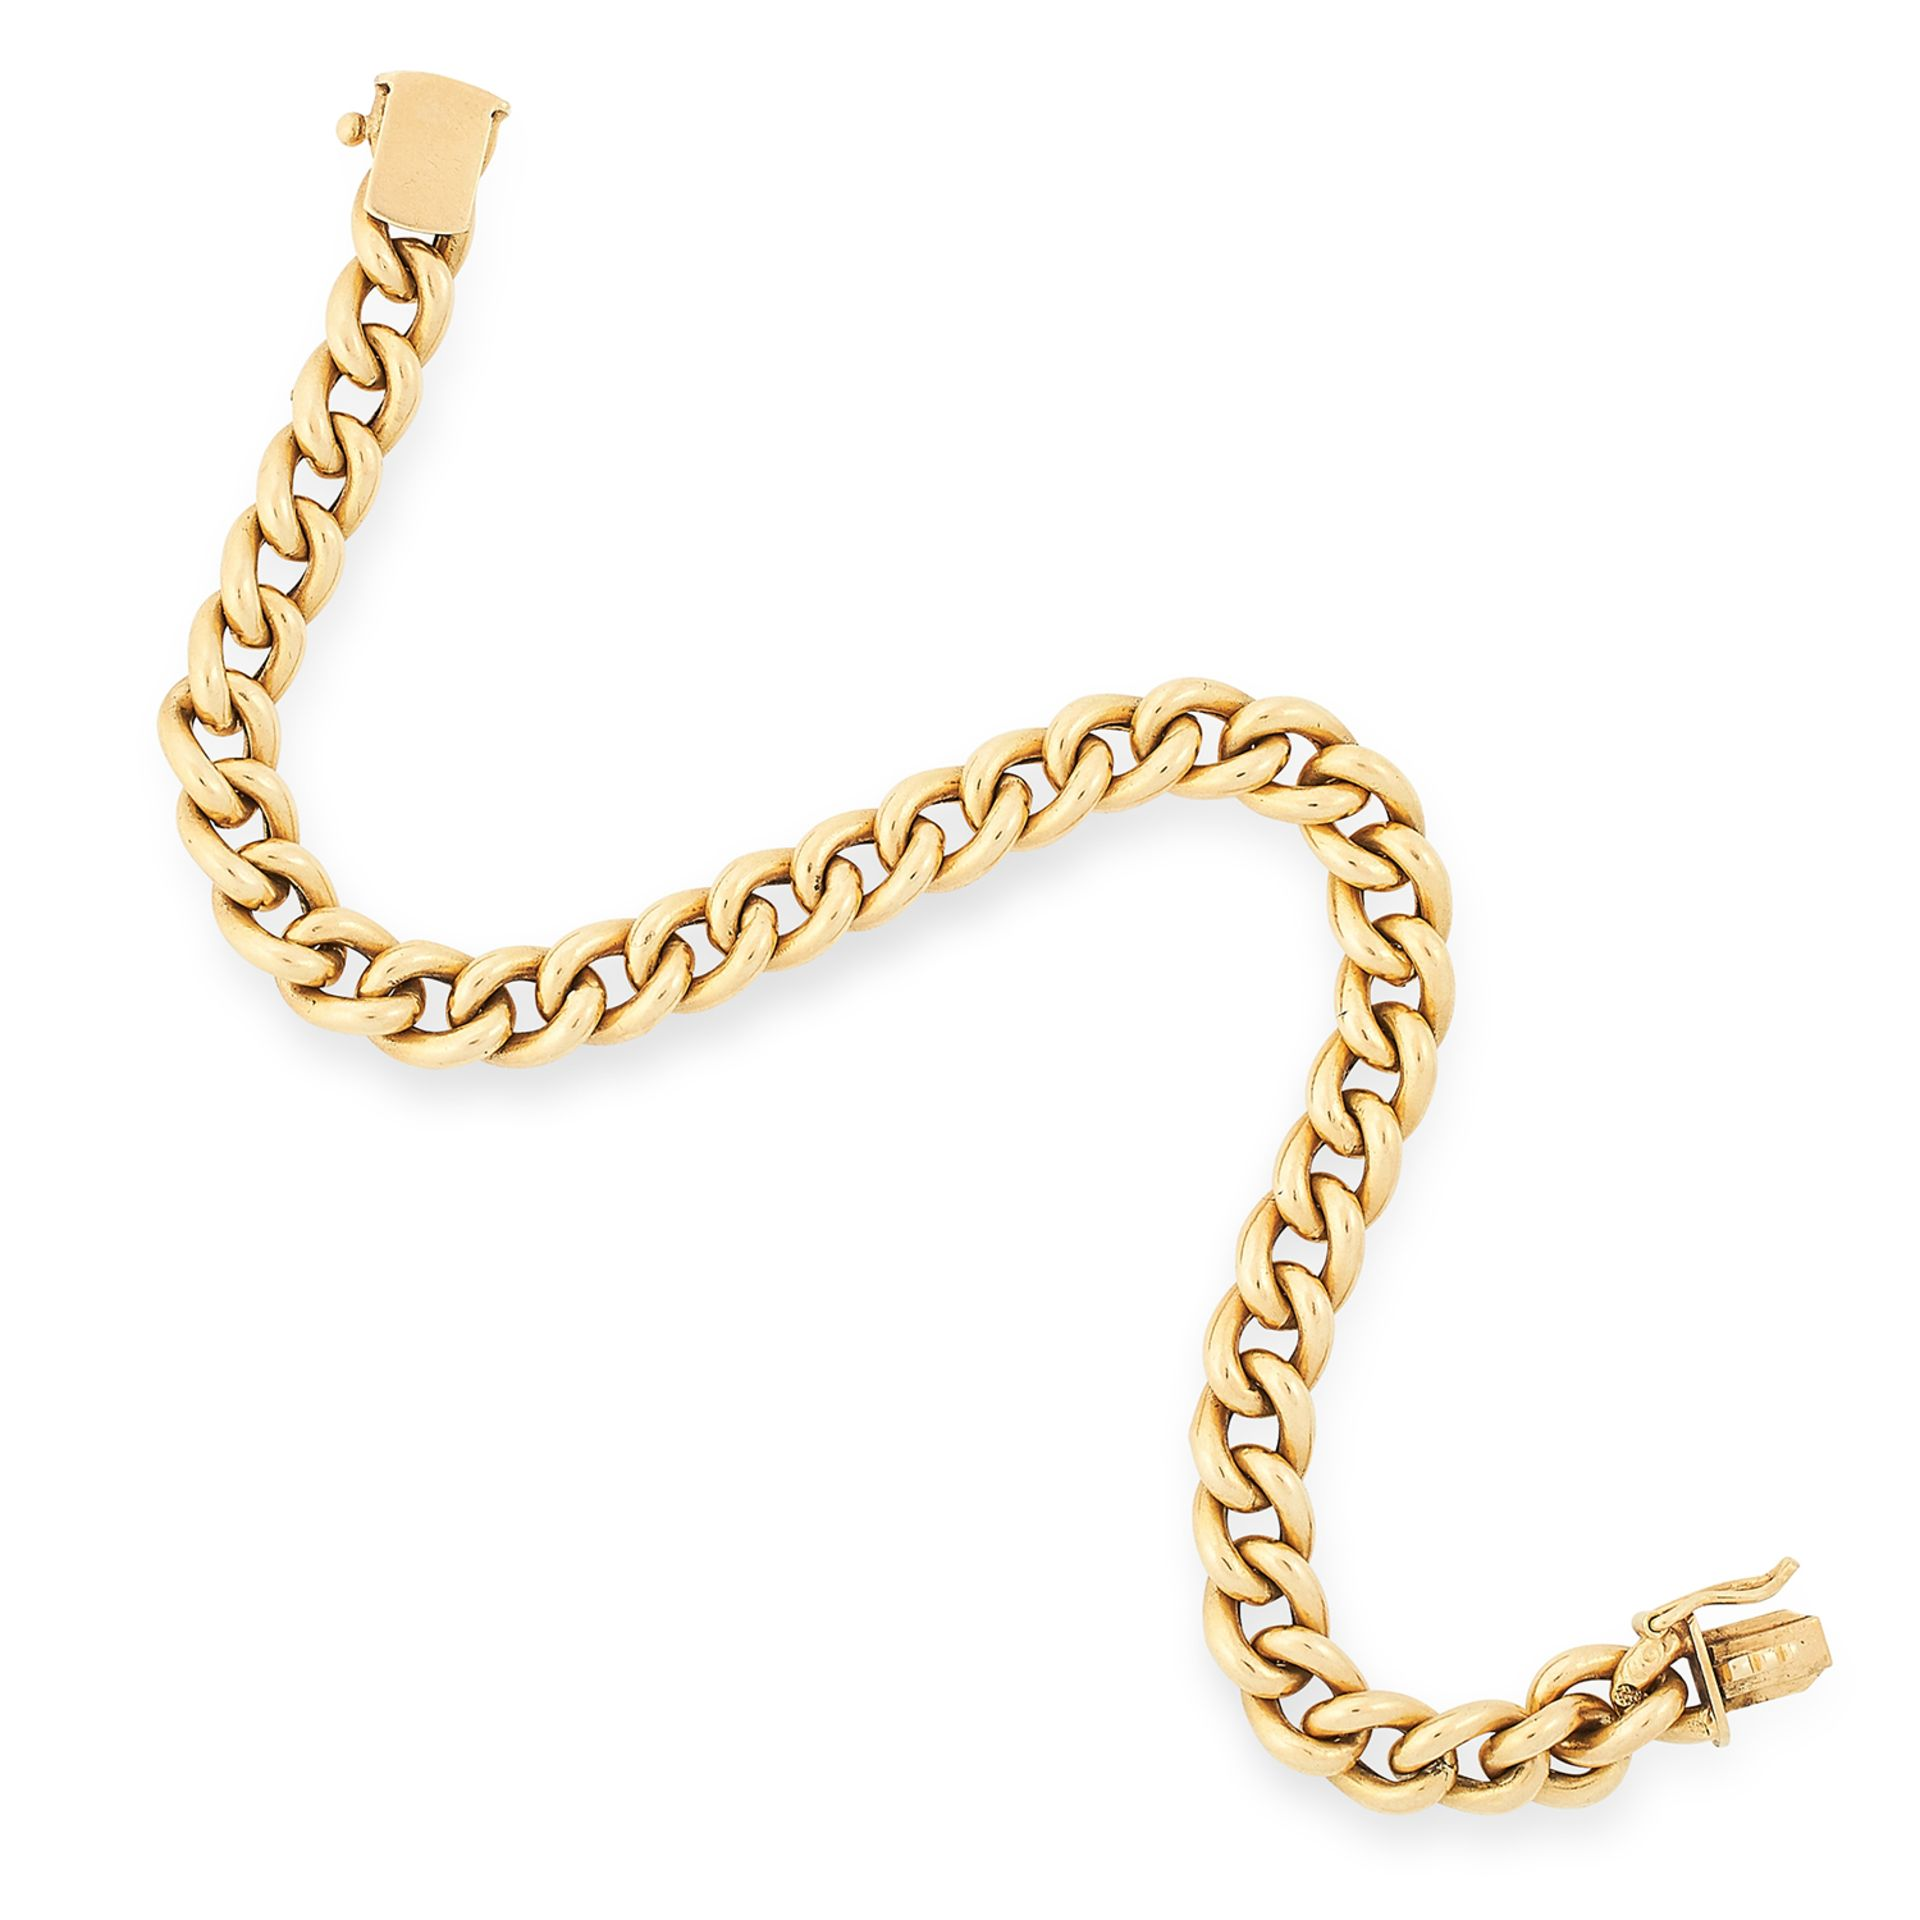 FANCY LINK BRACELET comprising of a row of textured curb links, 20cm, 16.8g.